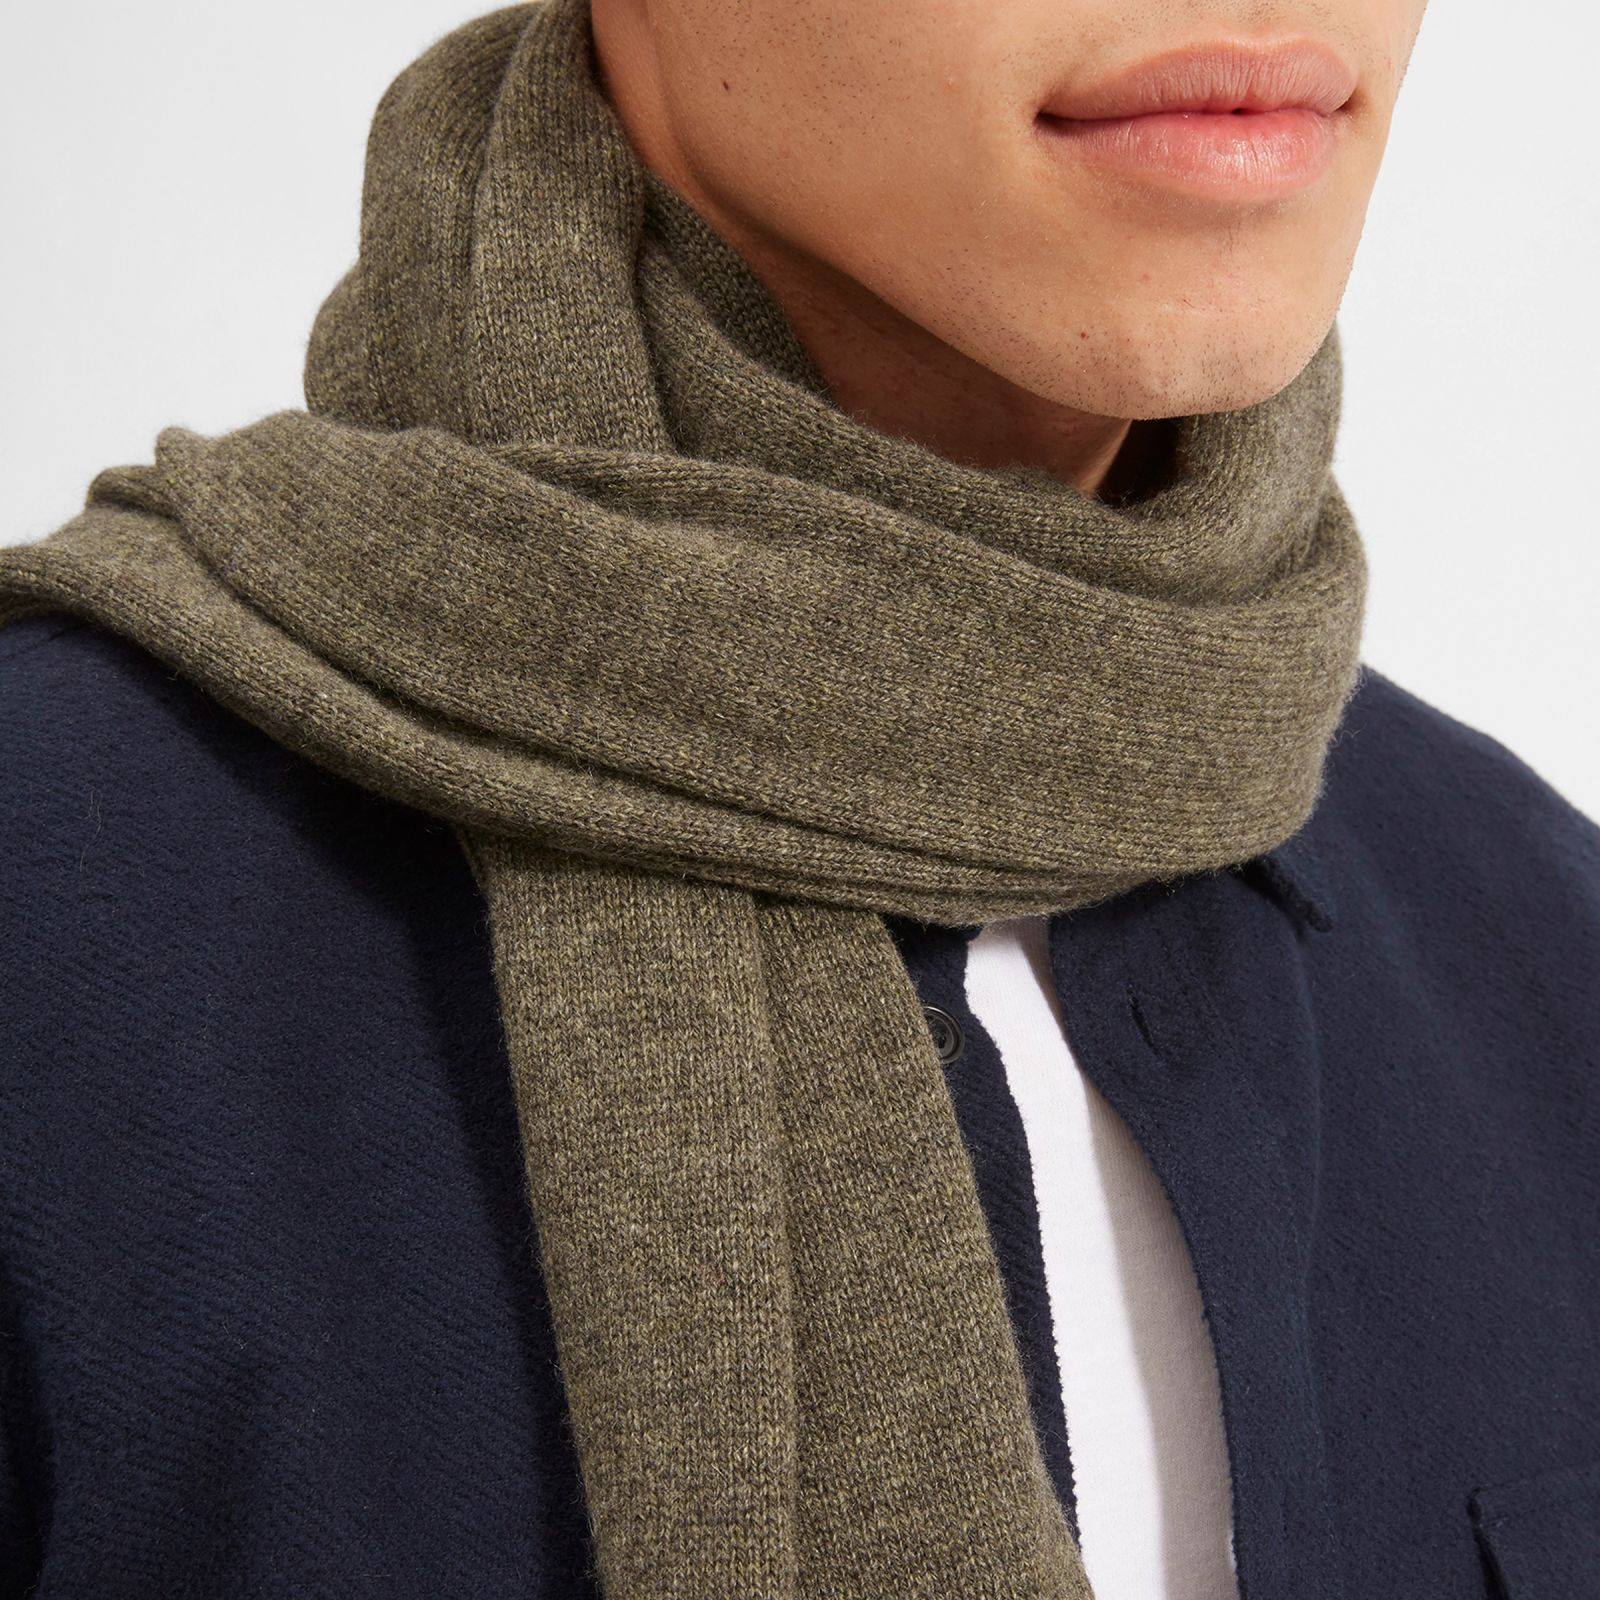 men's cashmere scarf by everlane in loden